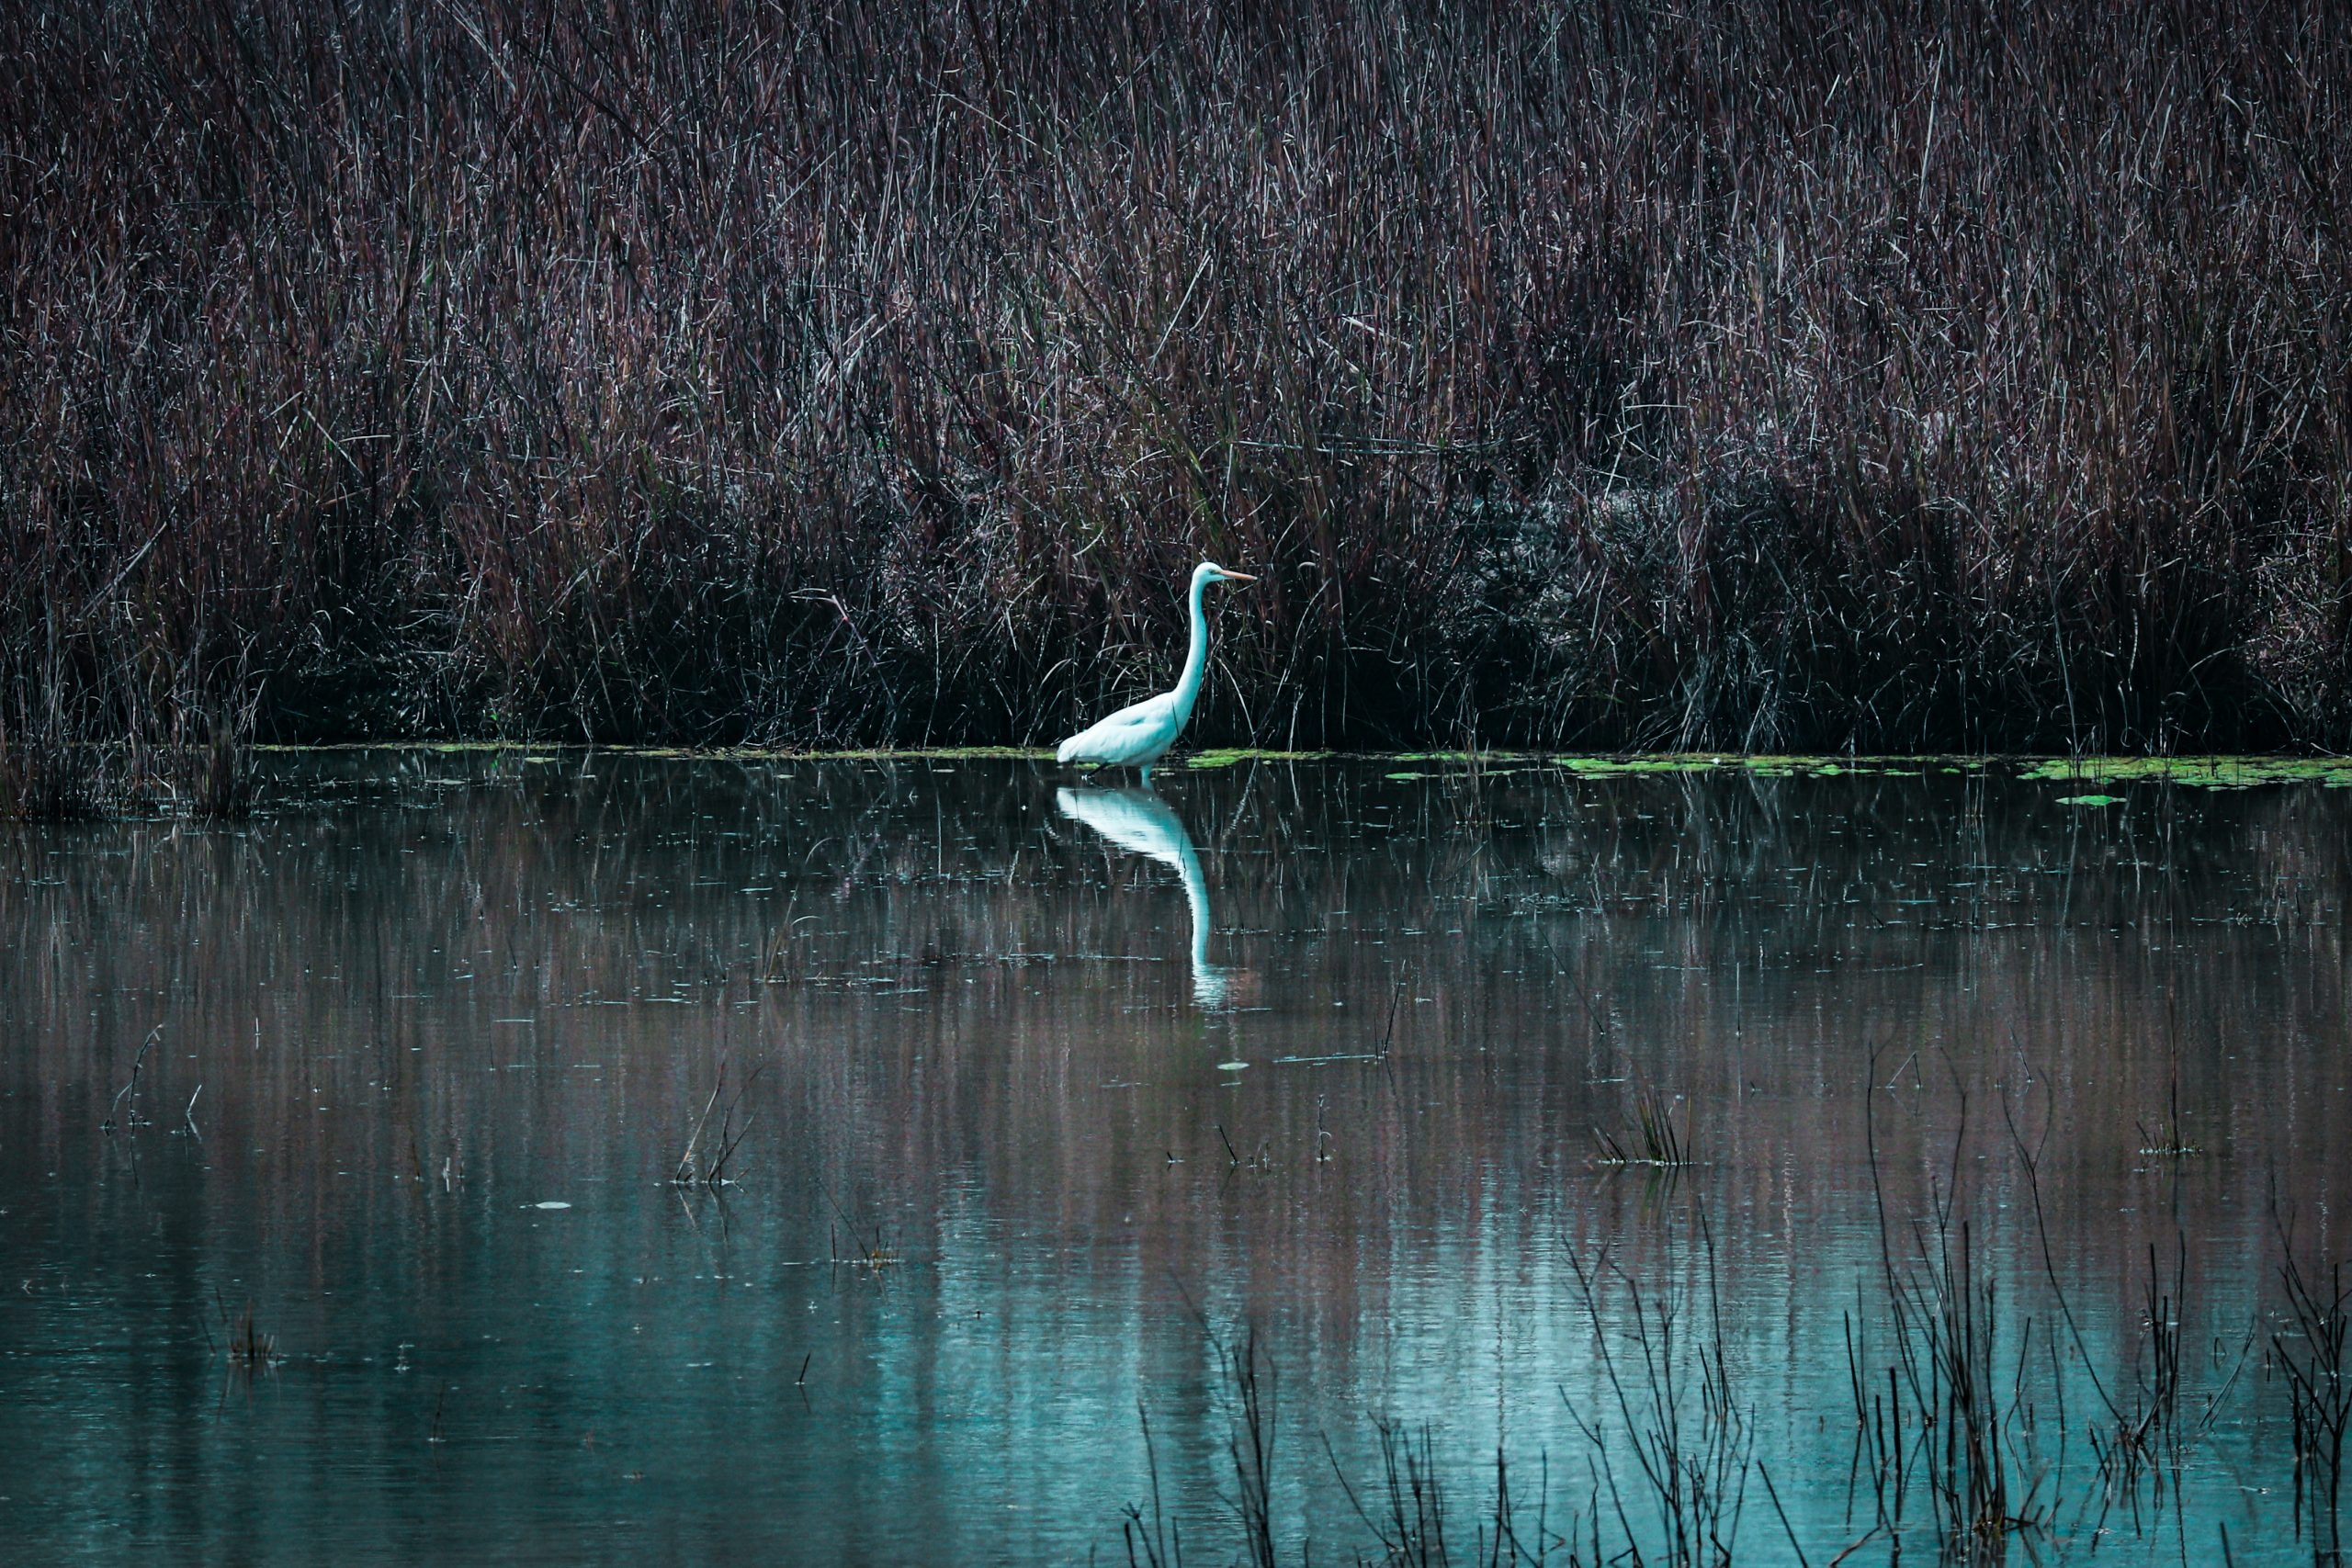 A egret in a pond